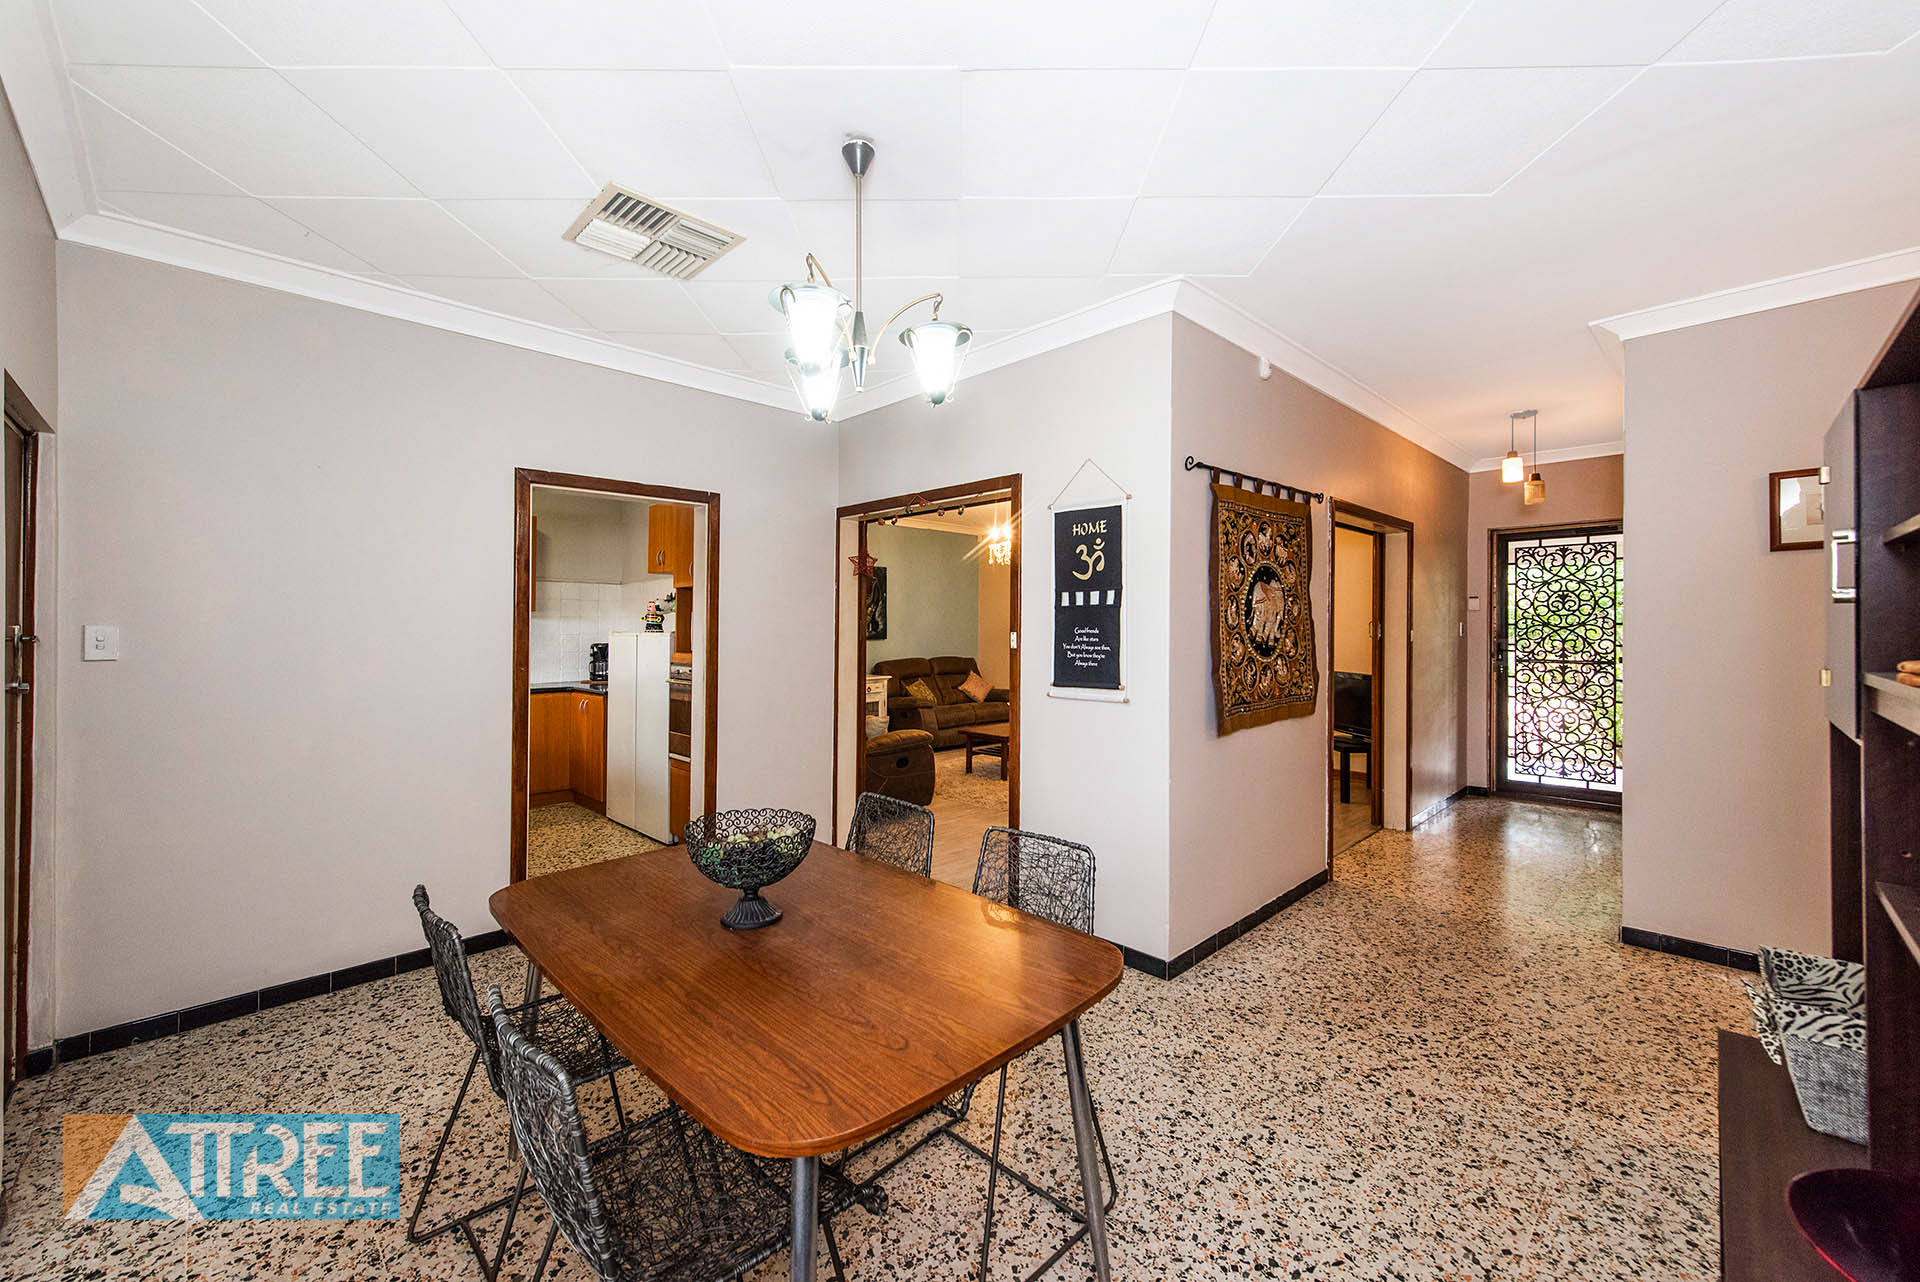 Property for sale in GOSNELLS, 2440 Albany Highway : Attree Real Estate